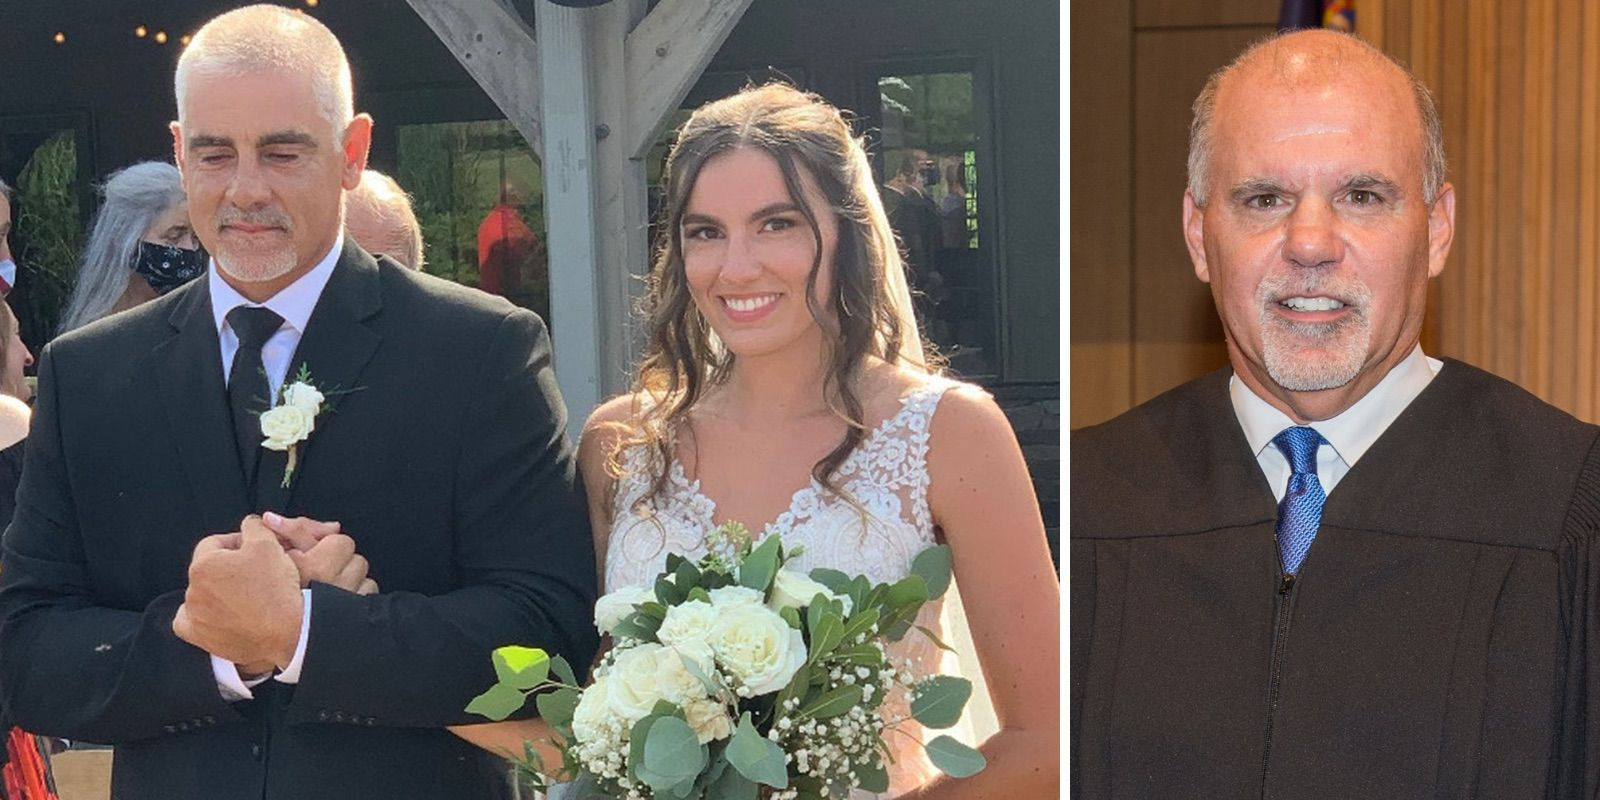 Federal judge lifts 50-person wedding limit in two New York couples' lawsuits against Gov. Cuomo